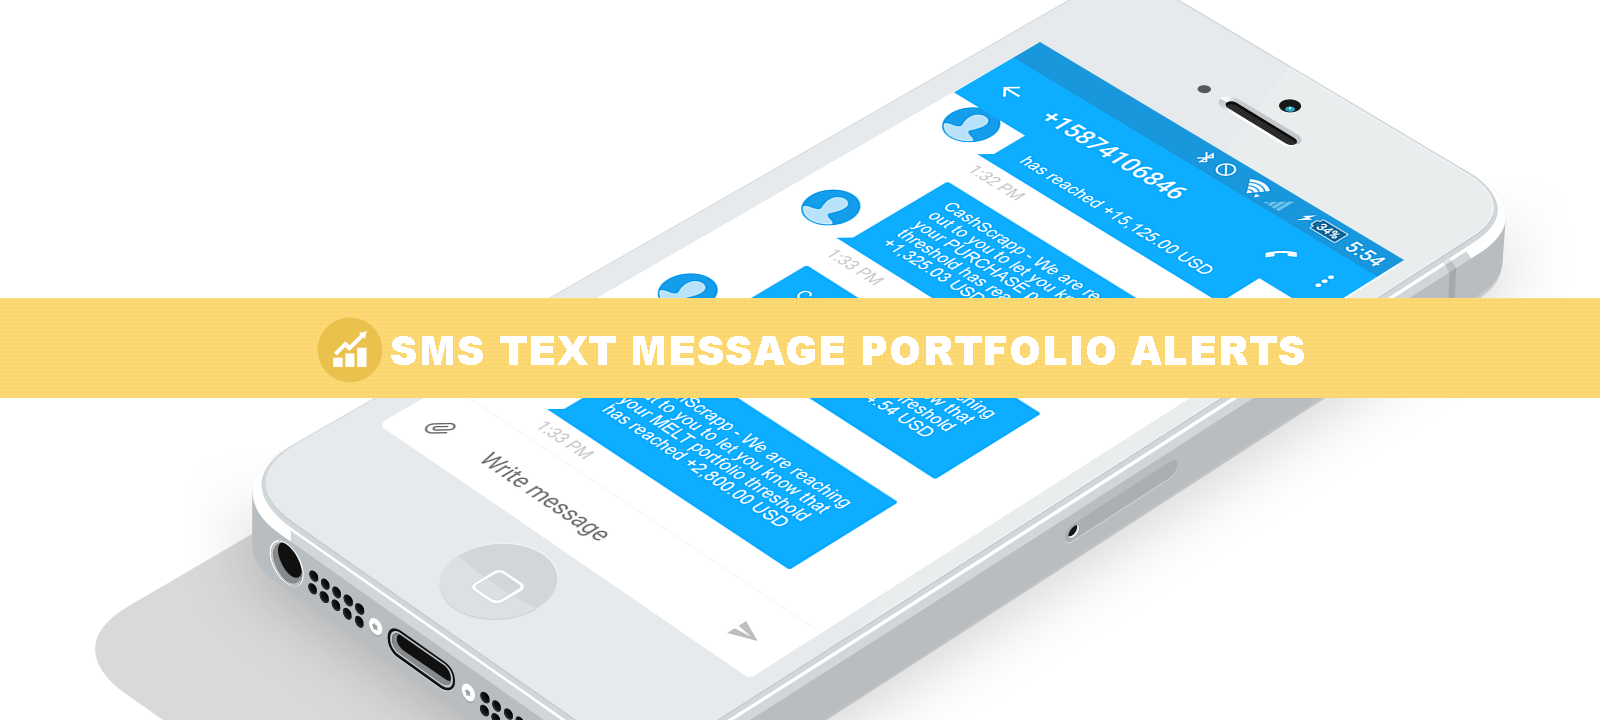 SMS text message alerts when your portfolio hits your configured threshold.